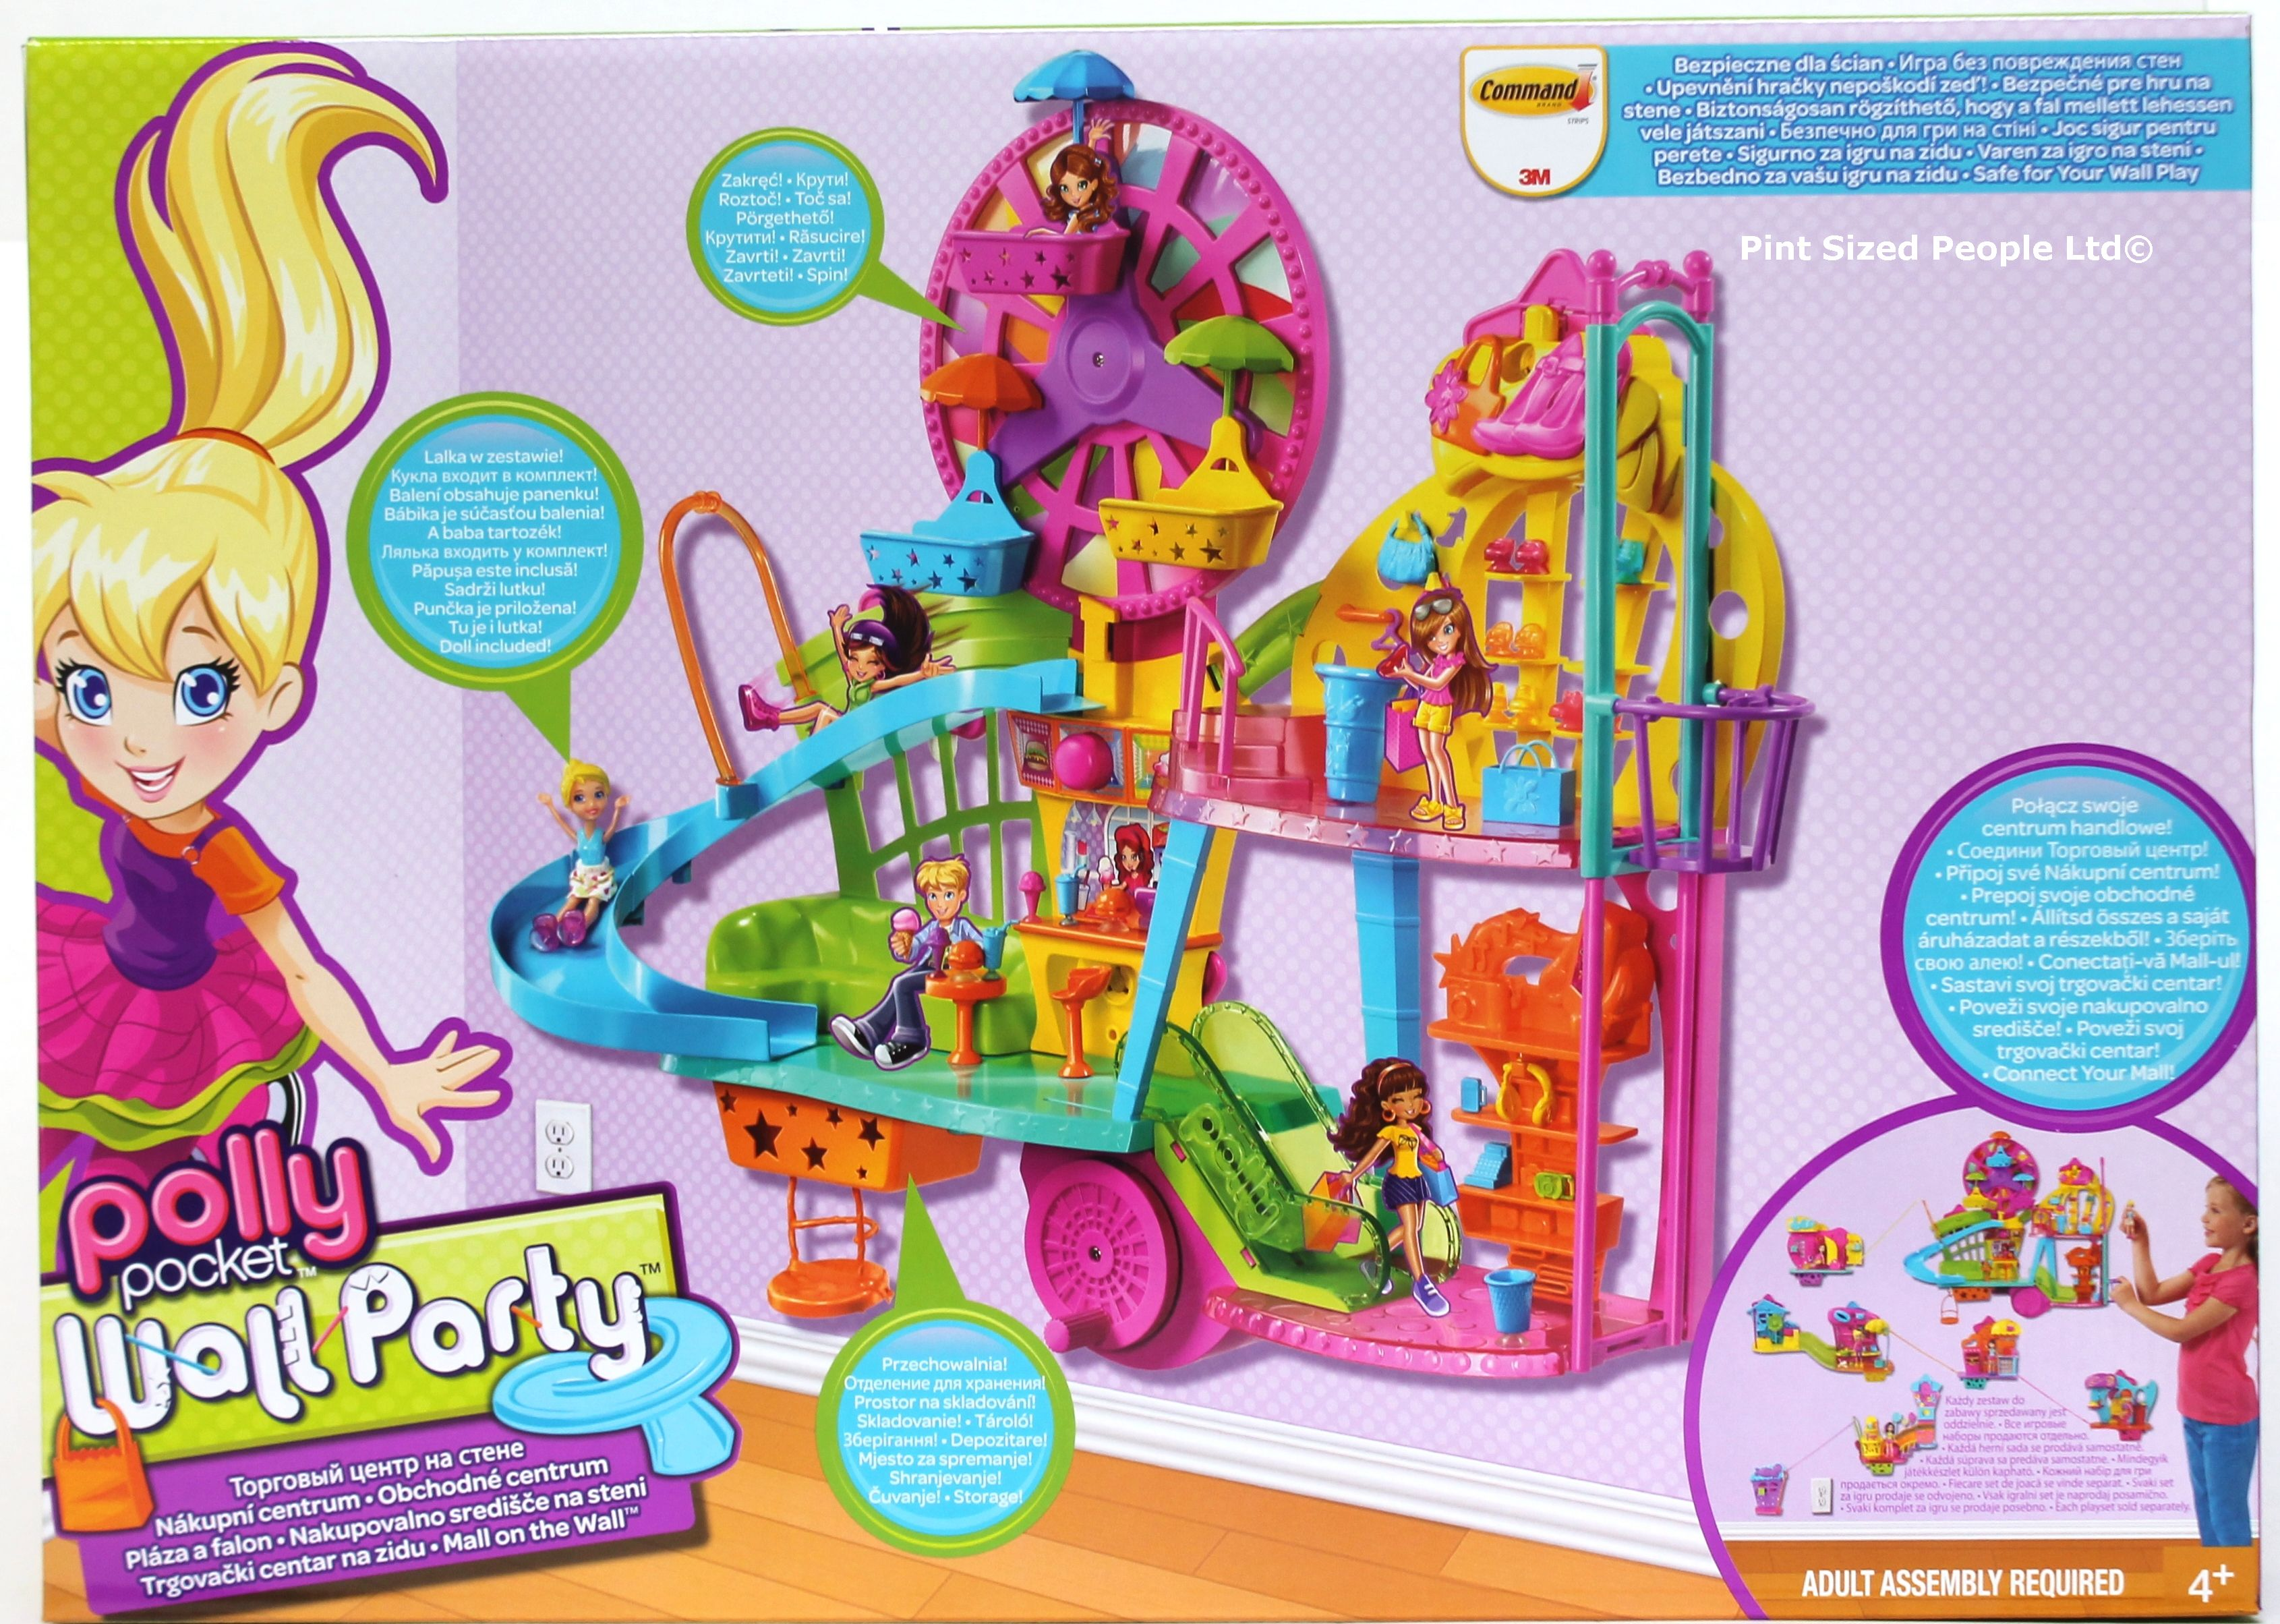 ... Toys / Dolls and Playsets / Polly Pocket Wall Party Mall on the Wall: https://www.byrnesonline.ie/shop/world-of-wonder/polly-pocket-wall...